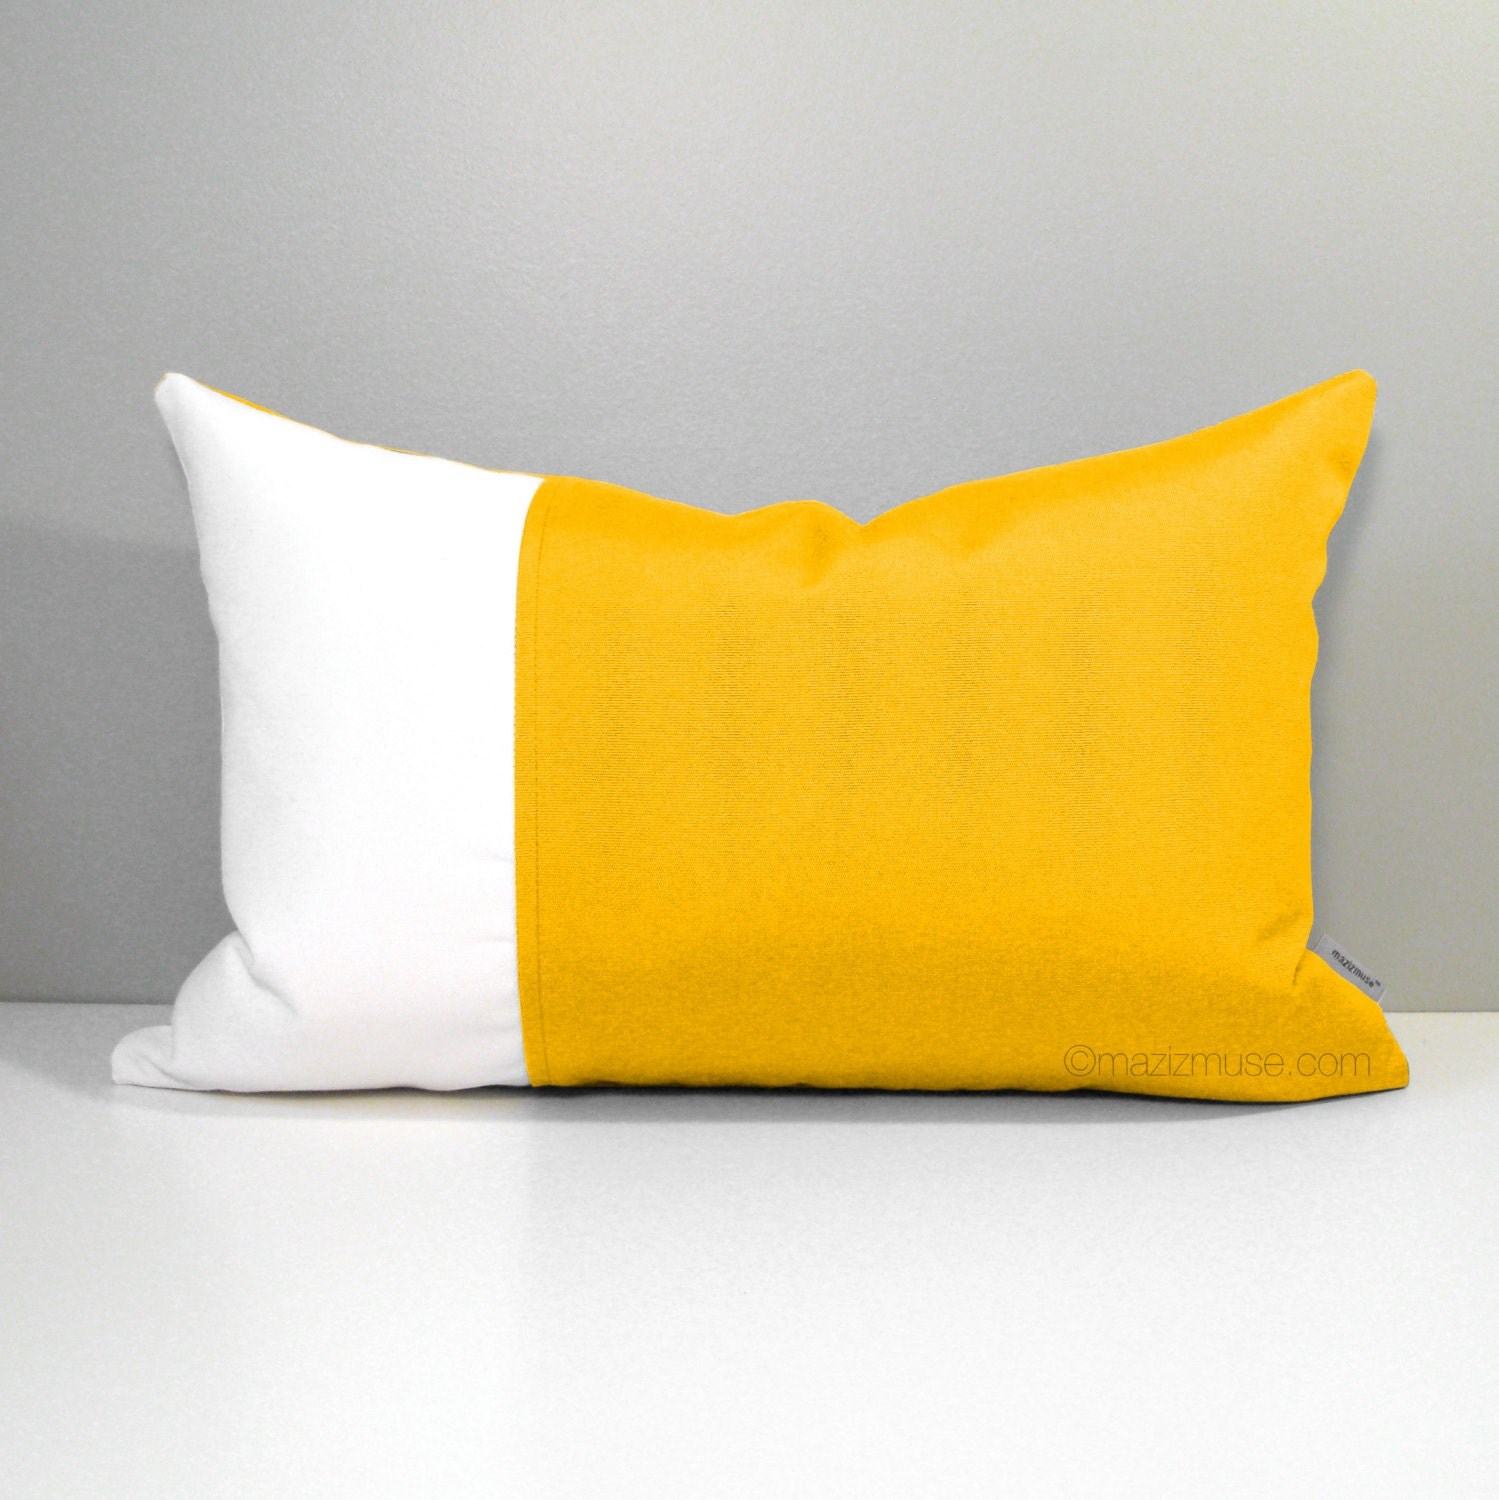 Throw Pillow Covers Yellow : Decorative Yellow Outdoor Pillow Cover White & Lemon Yellow